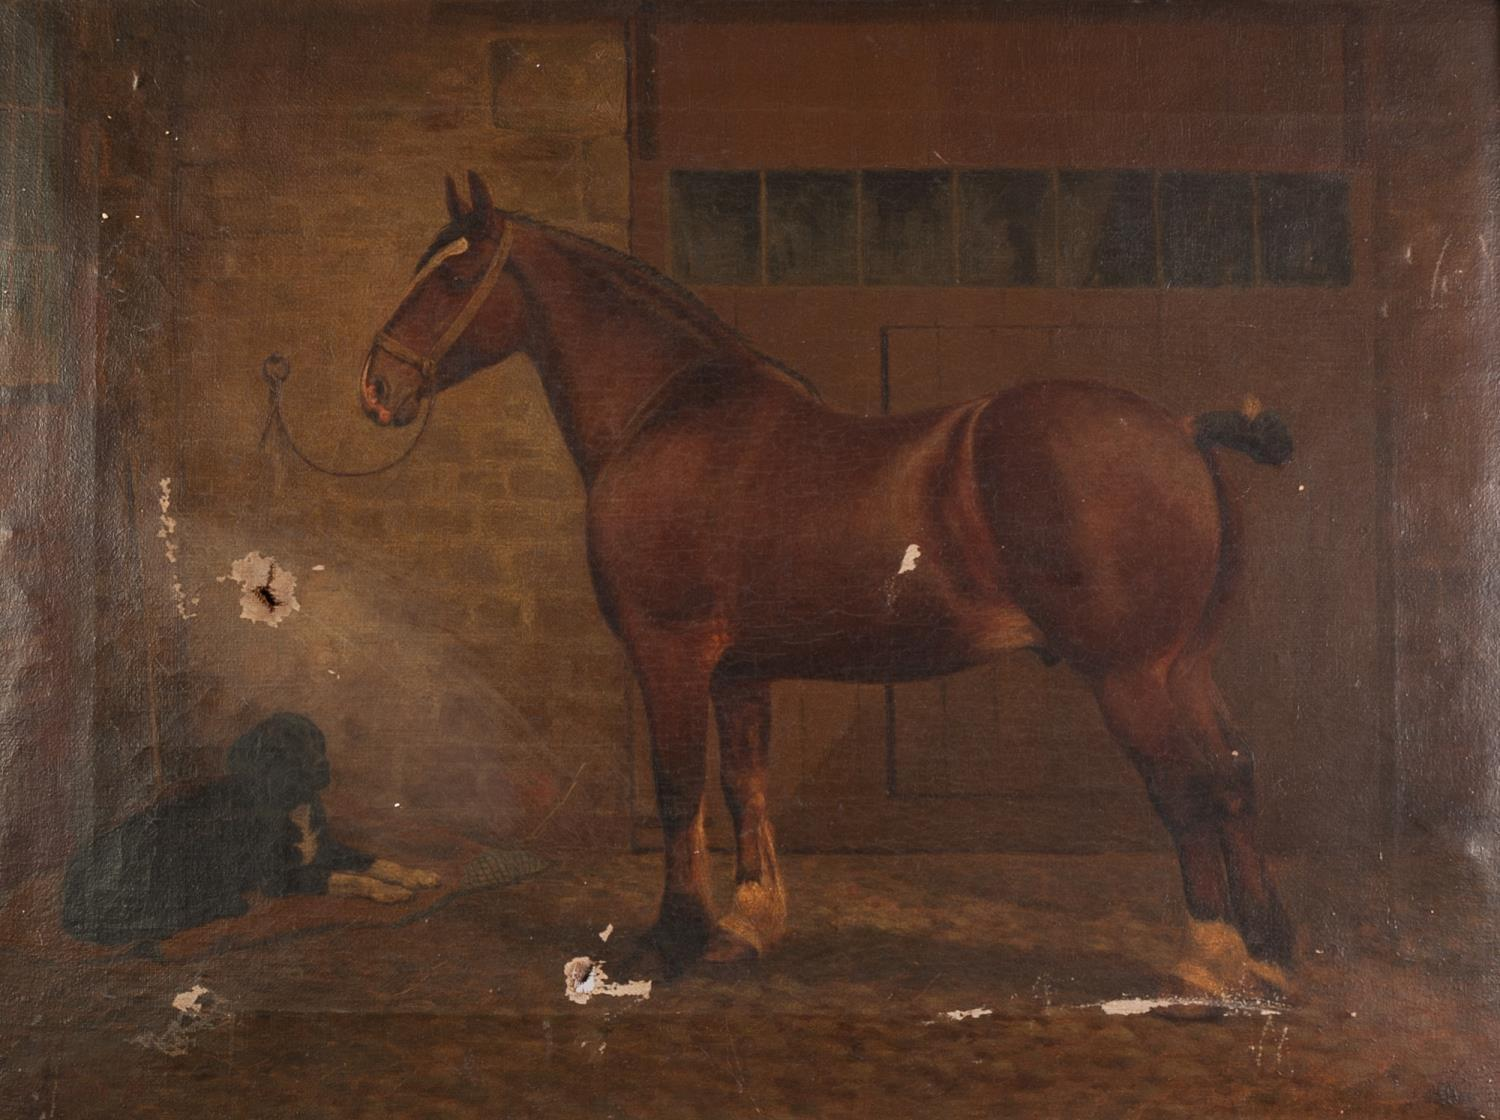 Lot 227 - ?UNATTRIBUTED (TWENTIETH CENTURY) OIL PAINTING ON CANVAS Stable interior with bay horse and dog